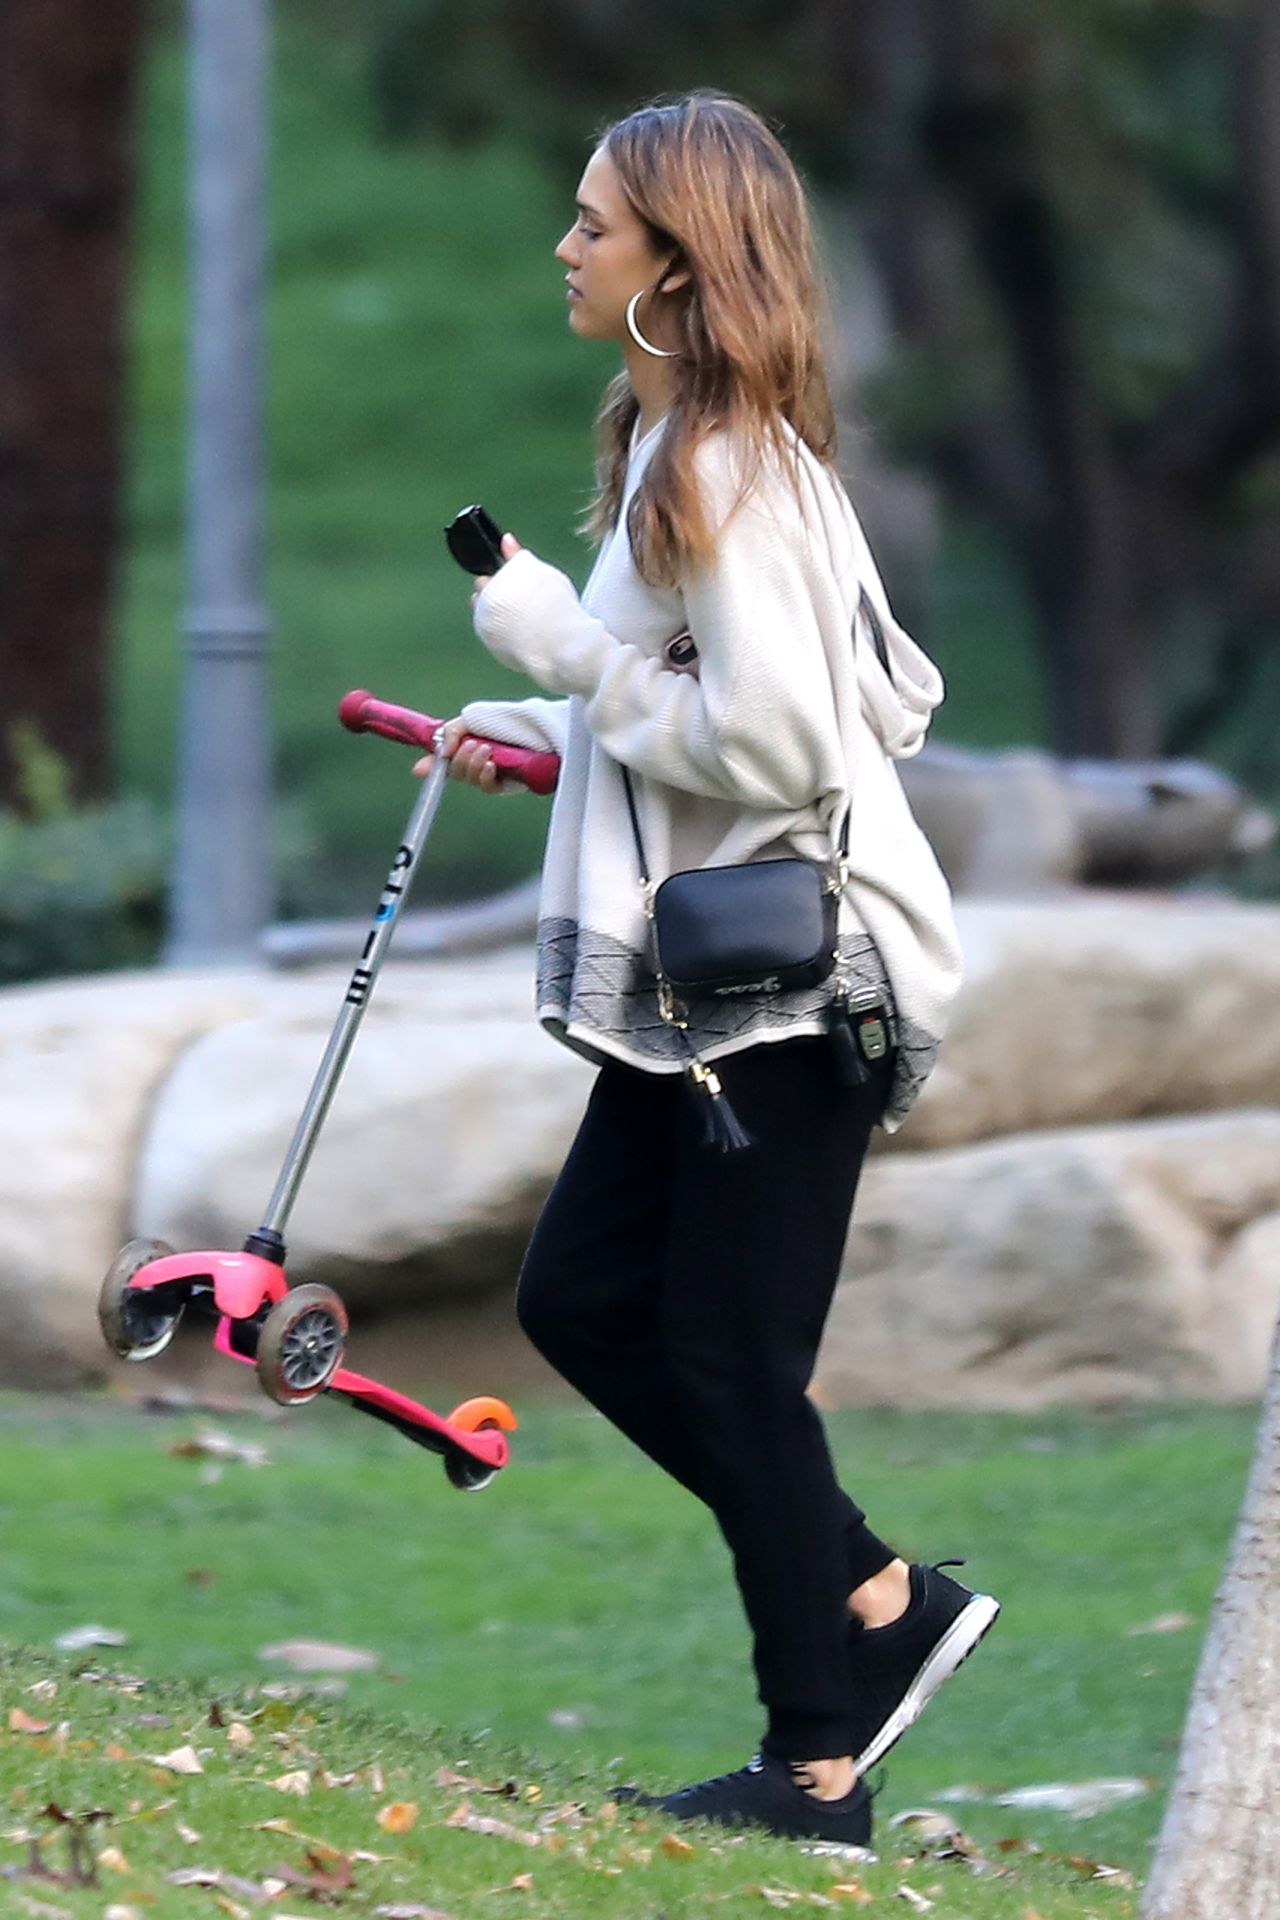 http://celebmafia.com/wp-content/uploads/2016/11/jessica-alba-at-coldwater-park-in-beverly-hills-november-2016-2.jpg